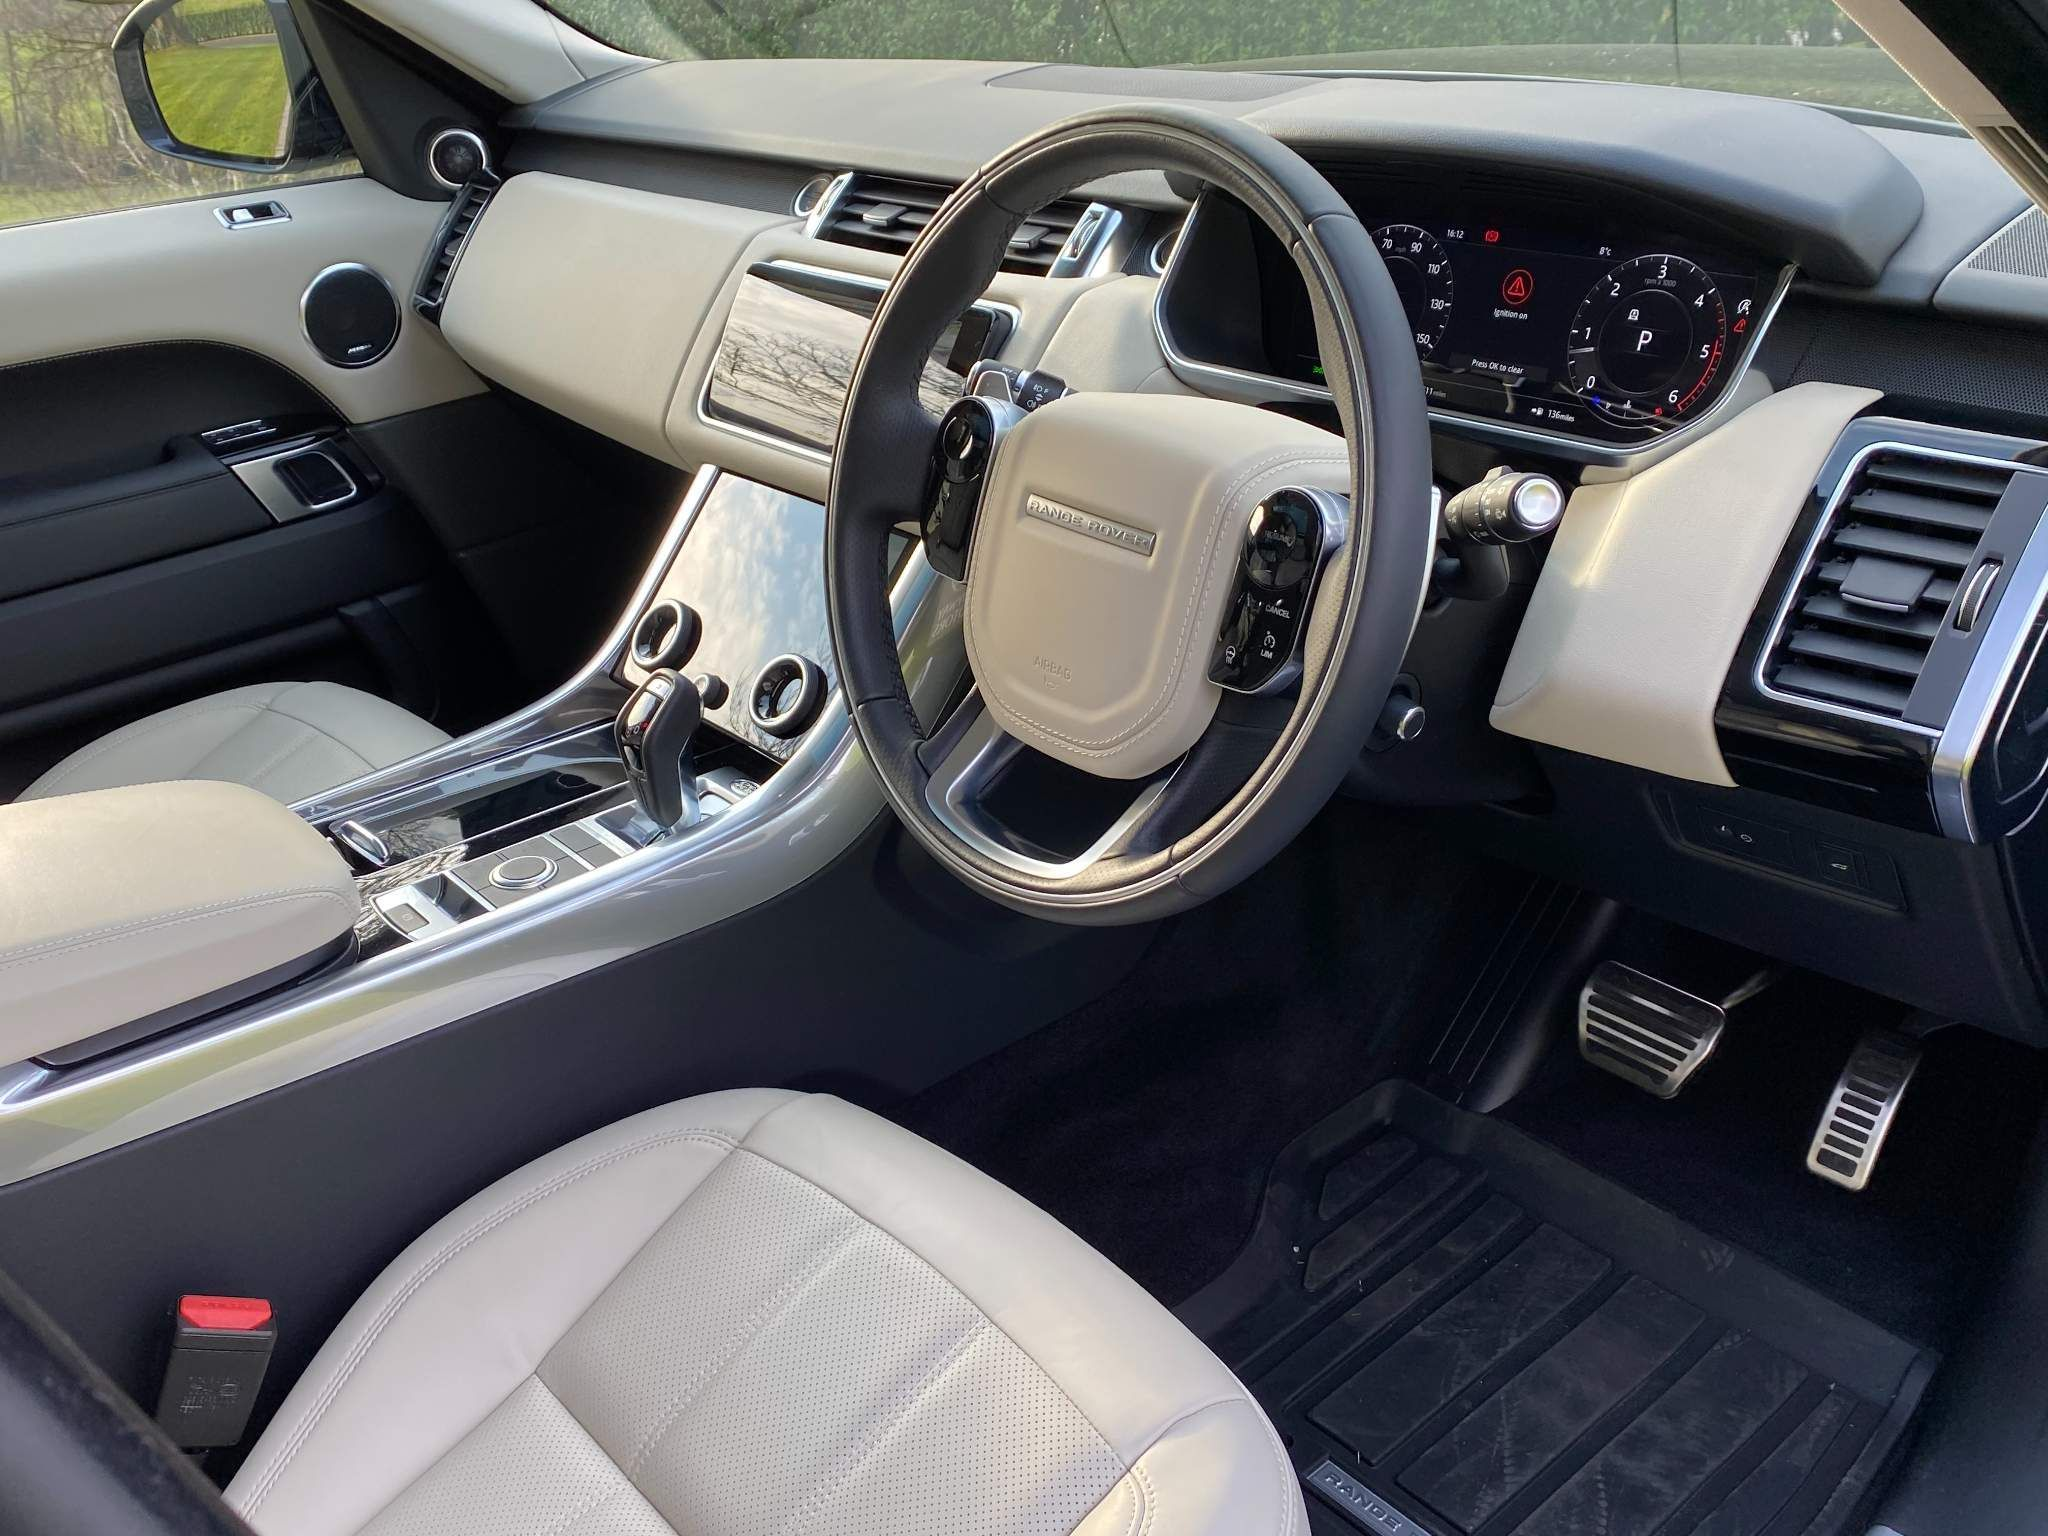 2021 Land Rover Range Rover Sport 3.0 D300 MHEV HSE Silver Auto 4WD (s/s) 5dr Diesel Automatic – Moyway Motors Dungannon full